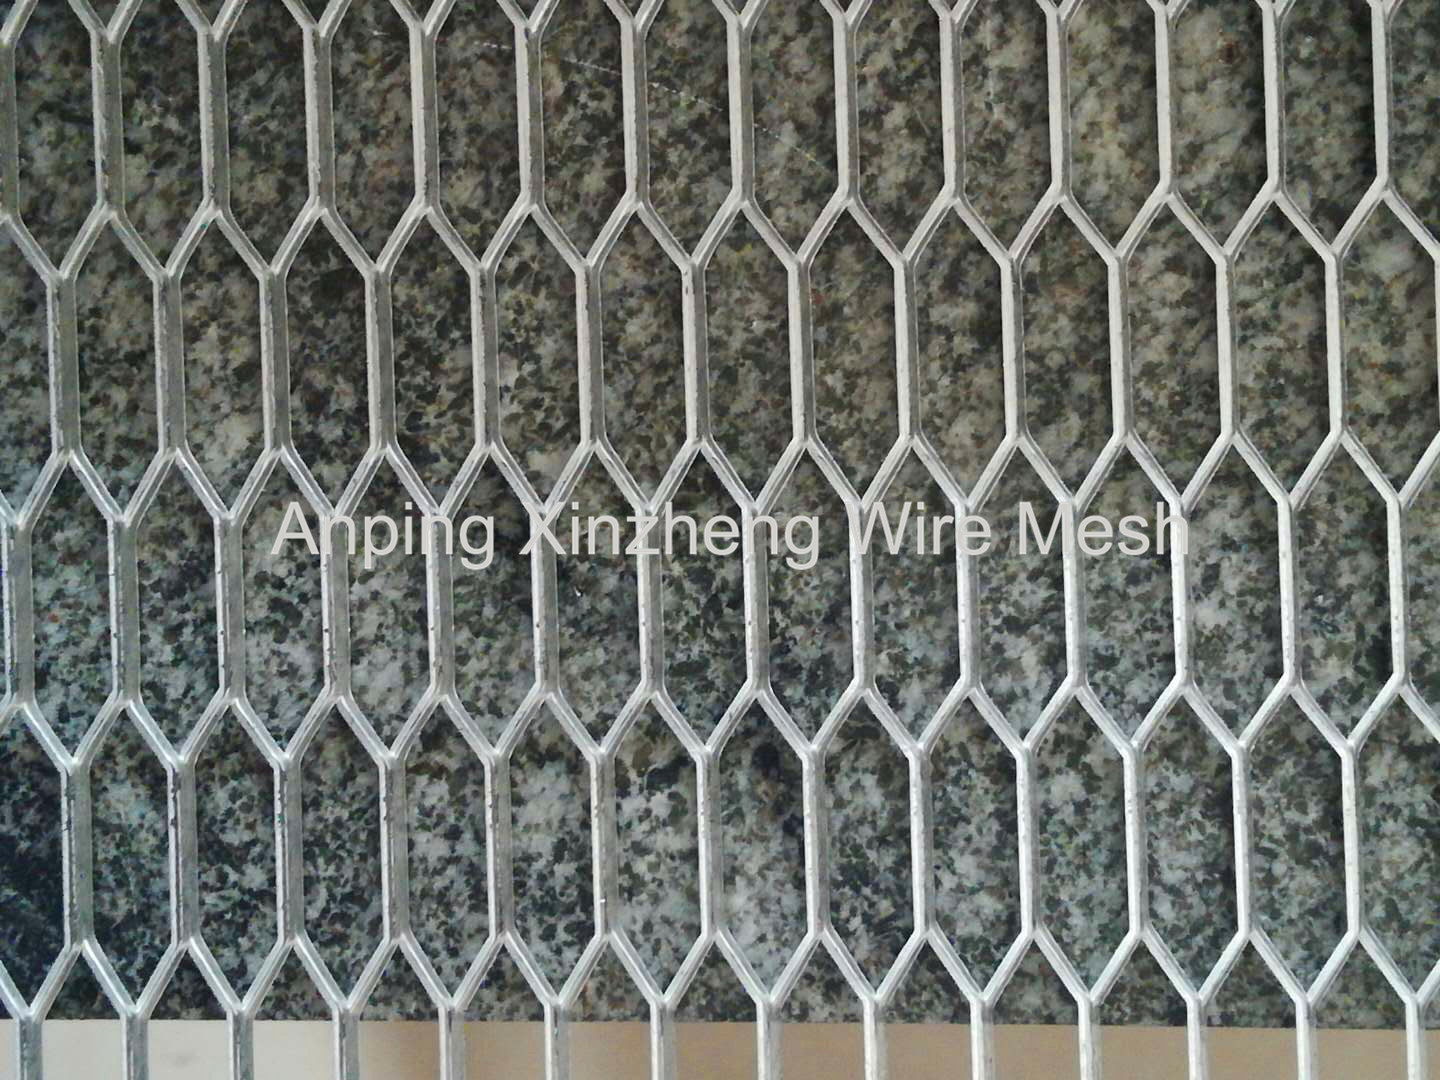 Stainless Steel Hexagonal Expanded Mesh